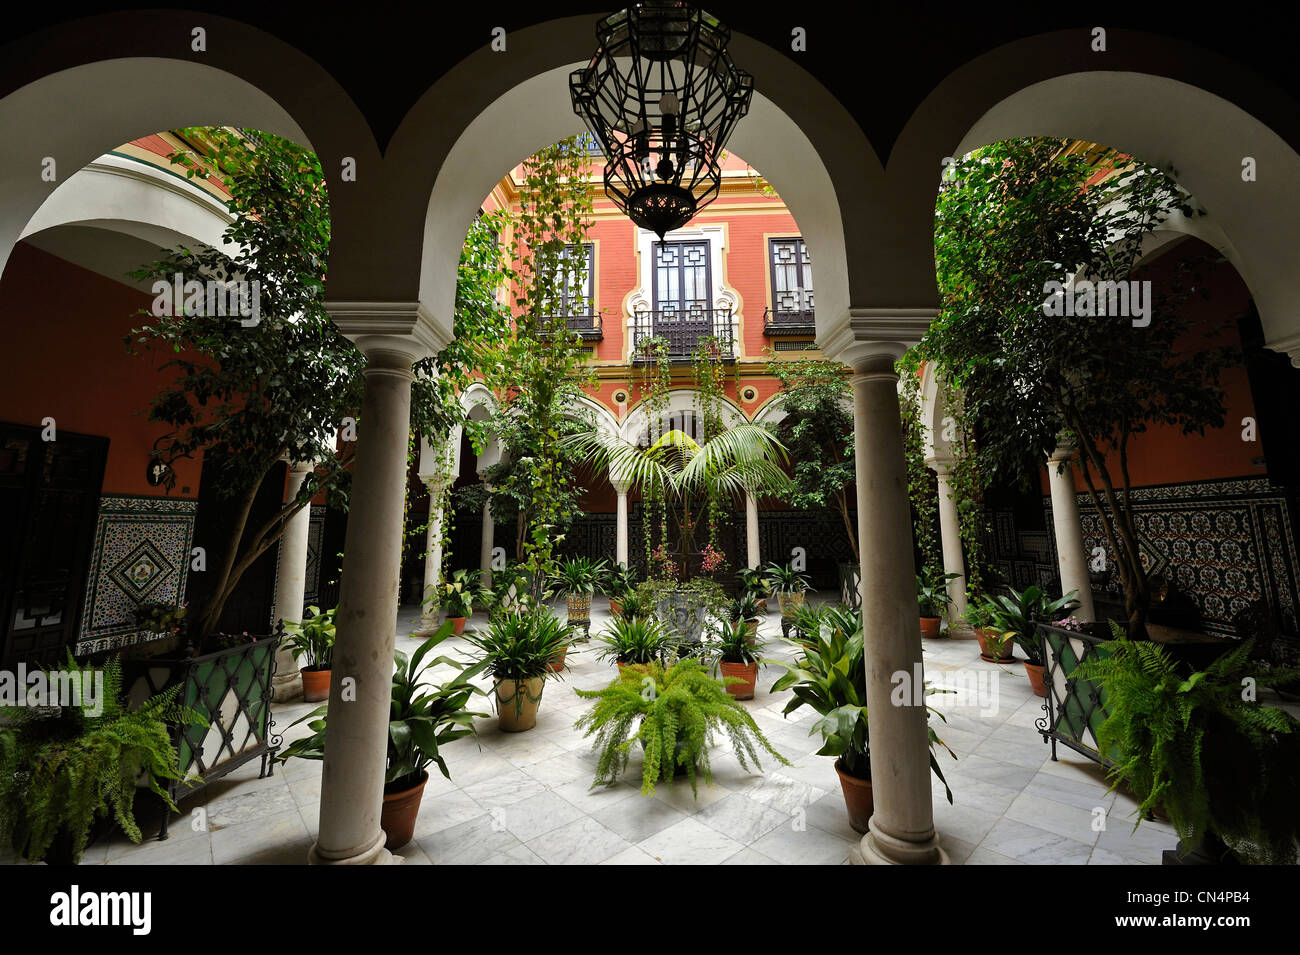 Spain, Andalusia, Seville, Santa Cruz District, patio - Stock Image